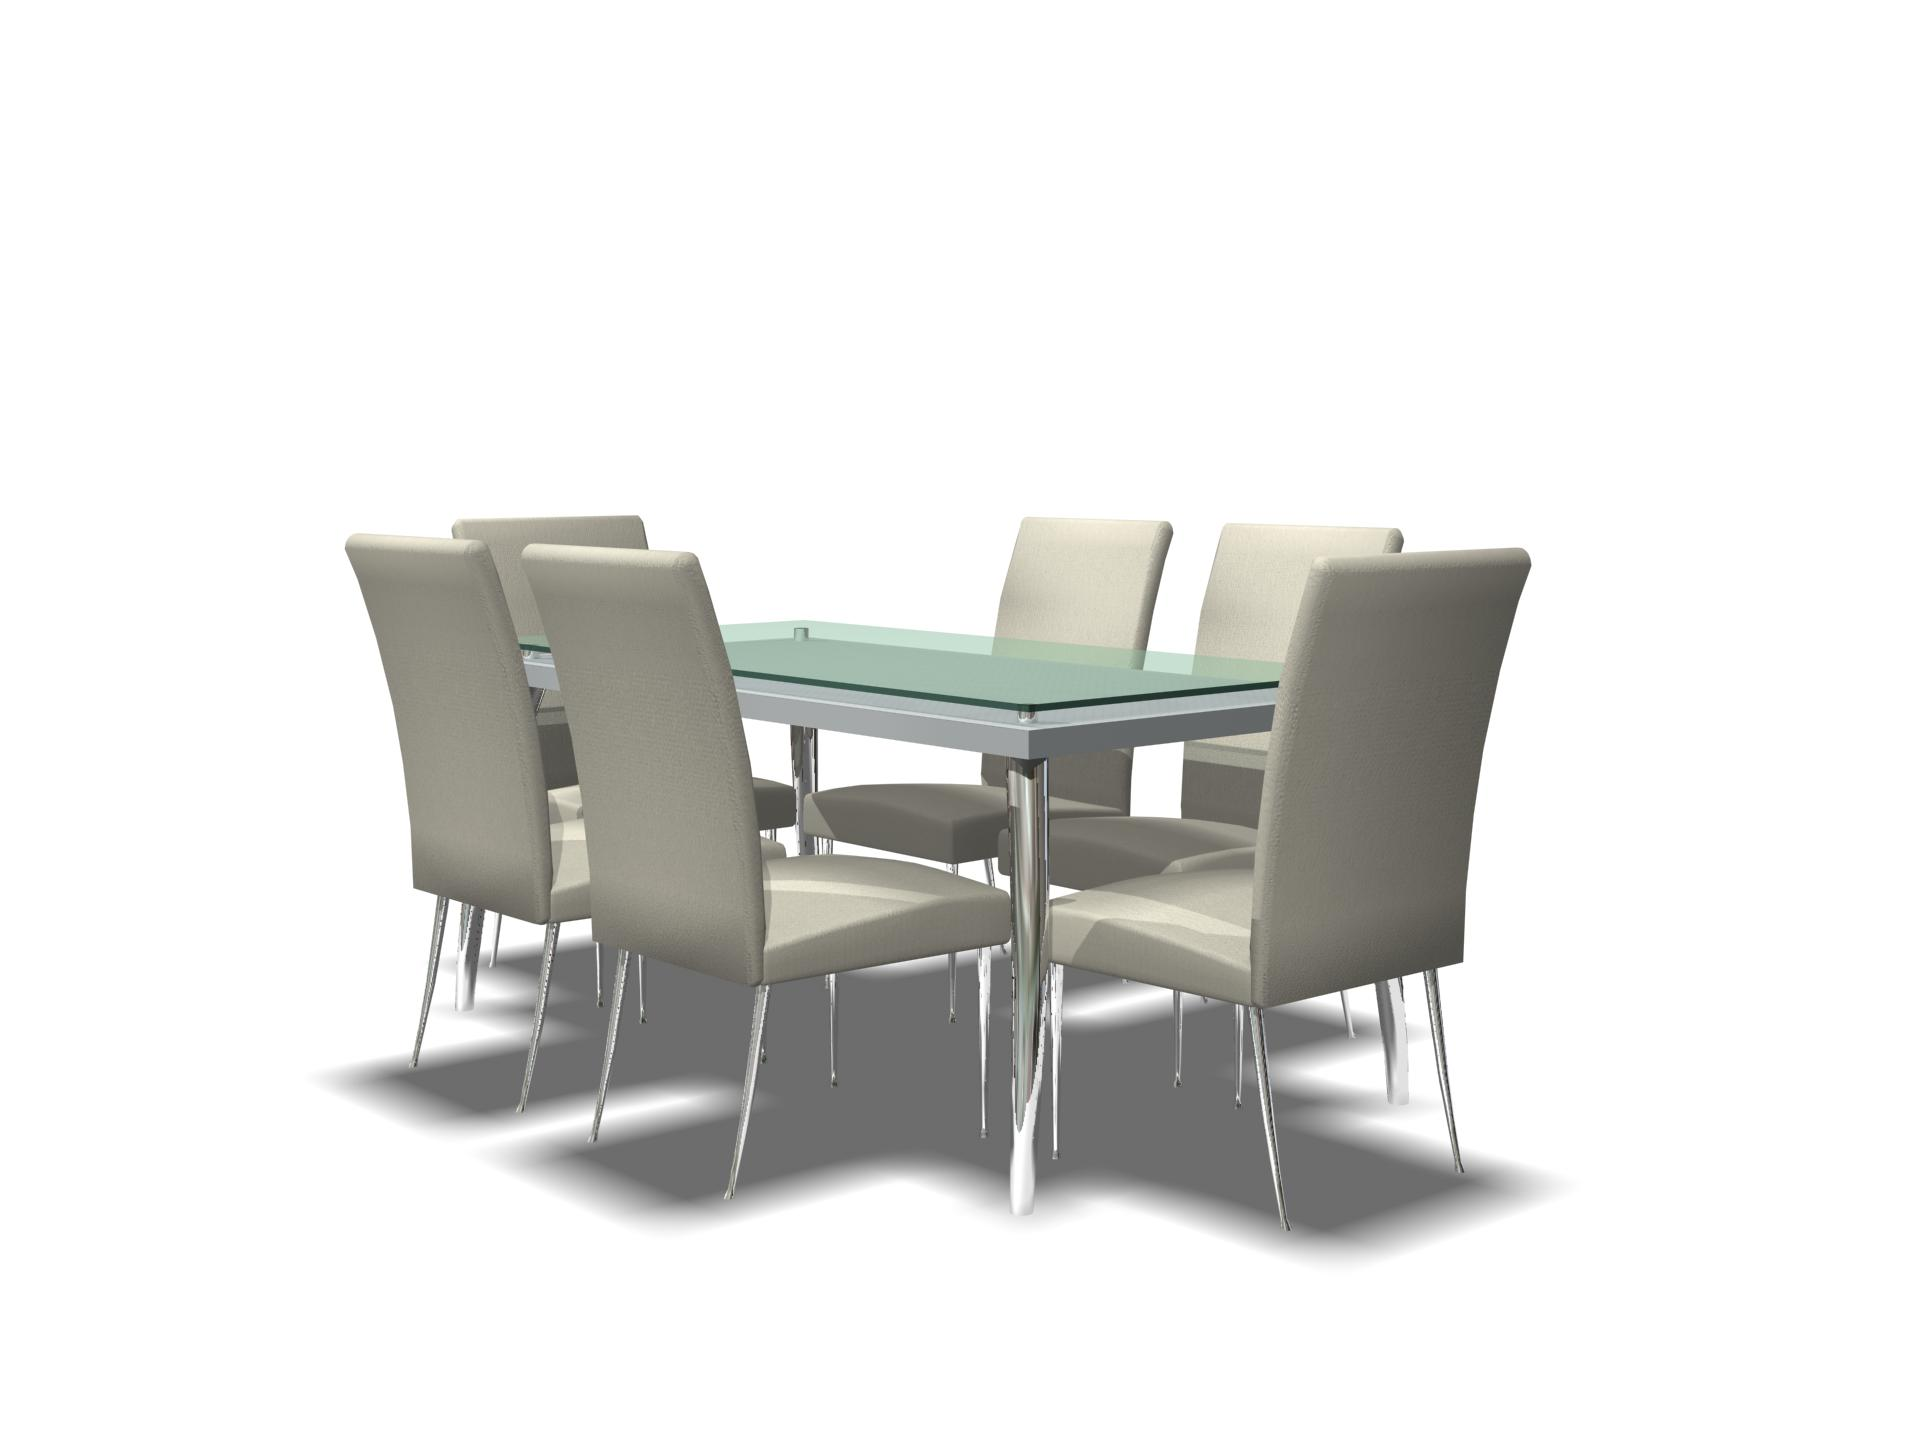 Furniture table 009 table 3d model download free 3d for Model furniture